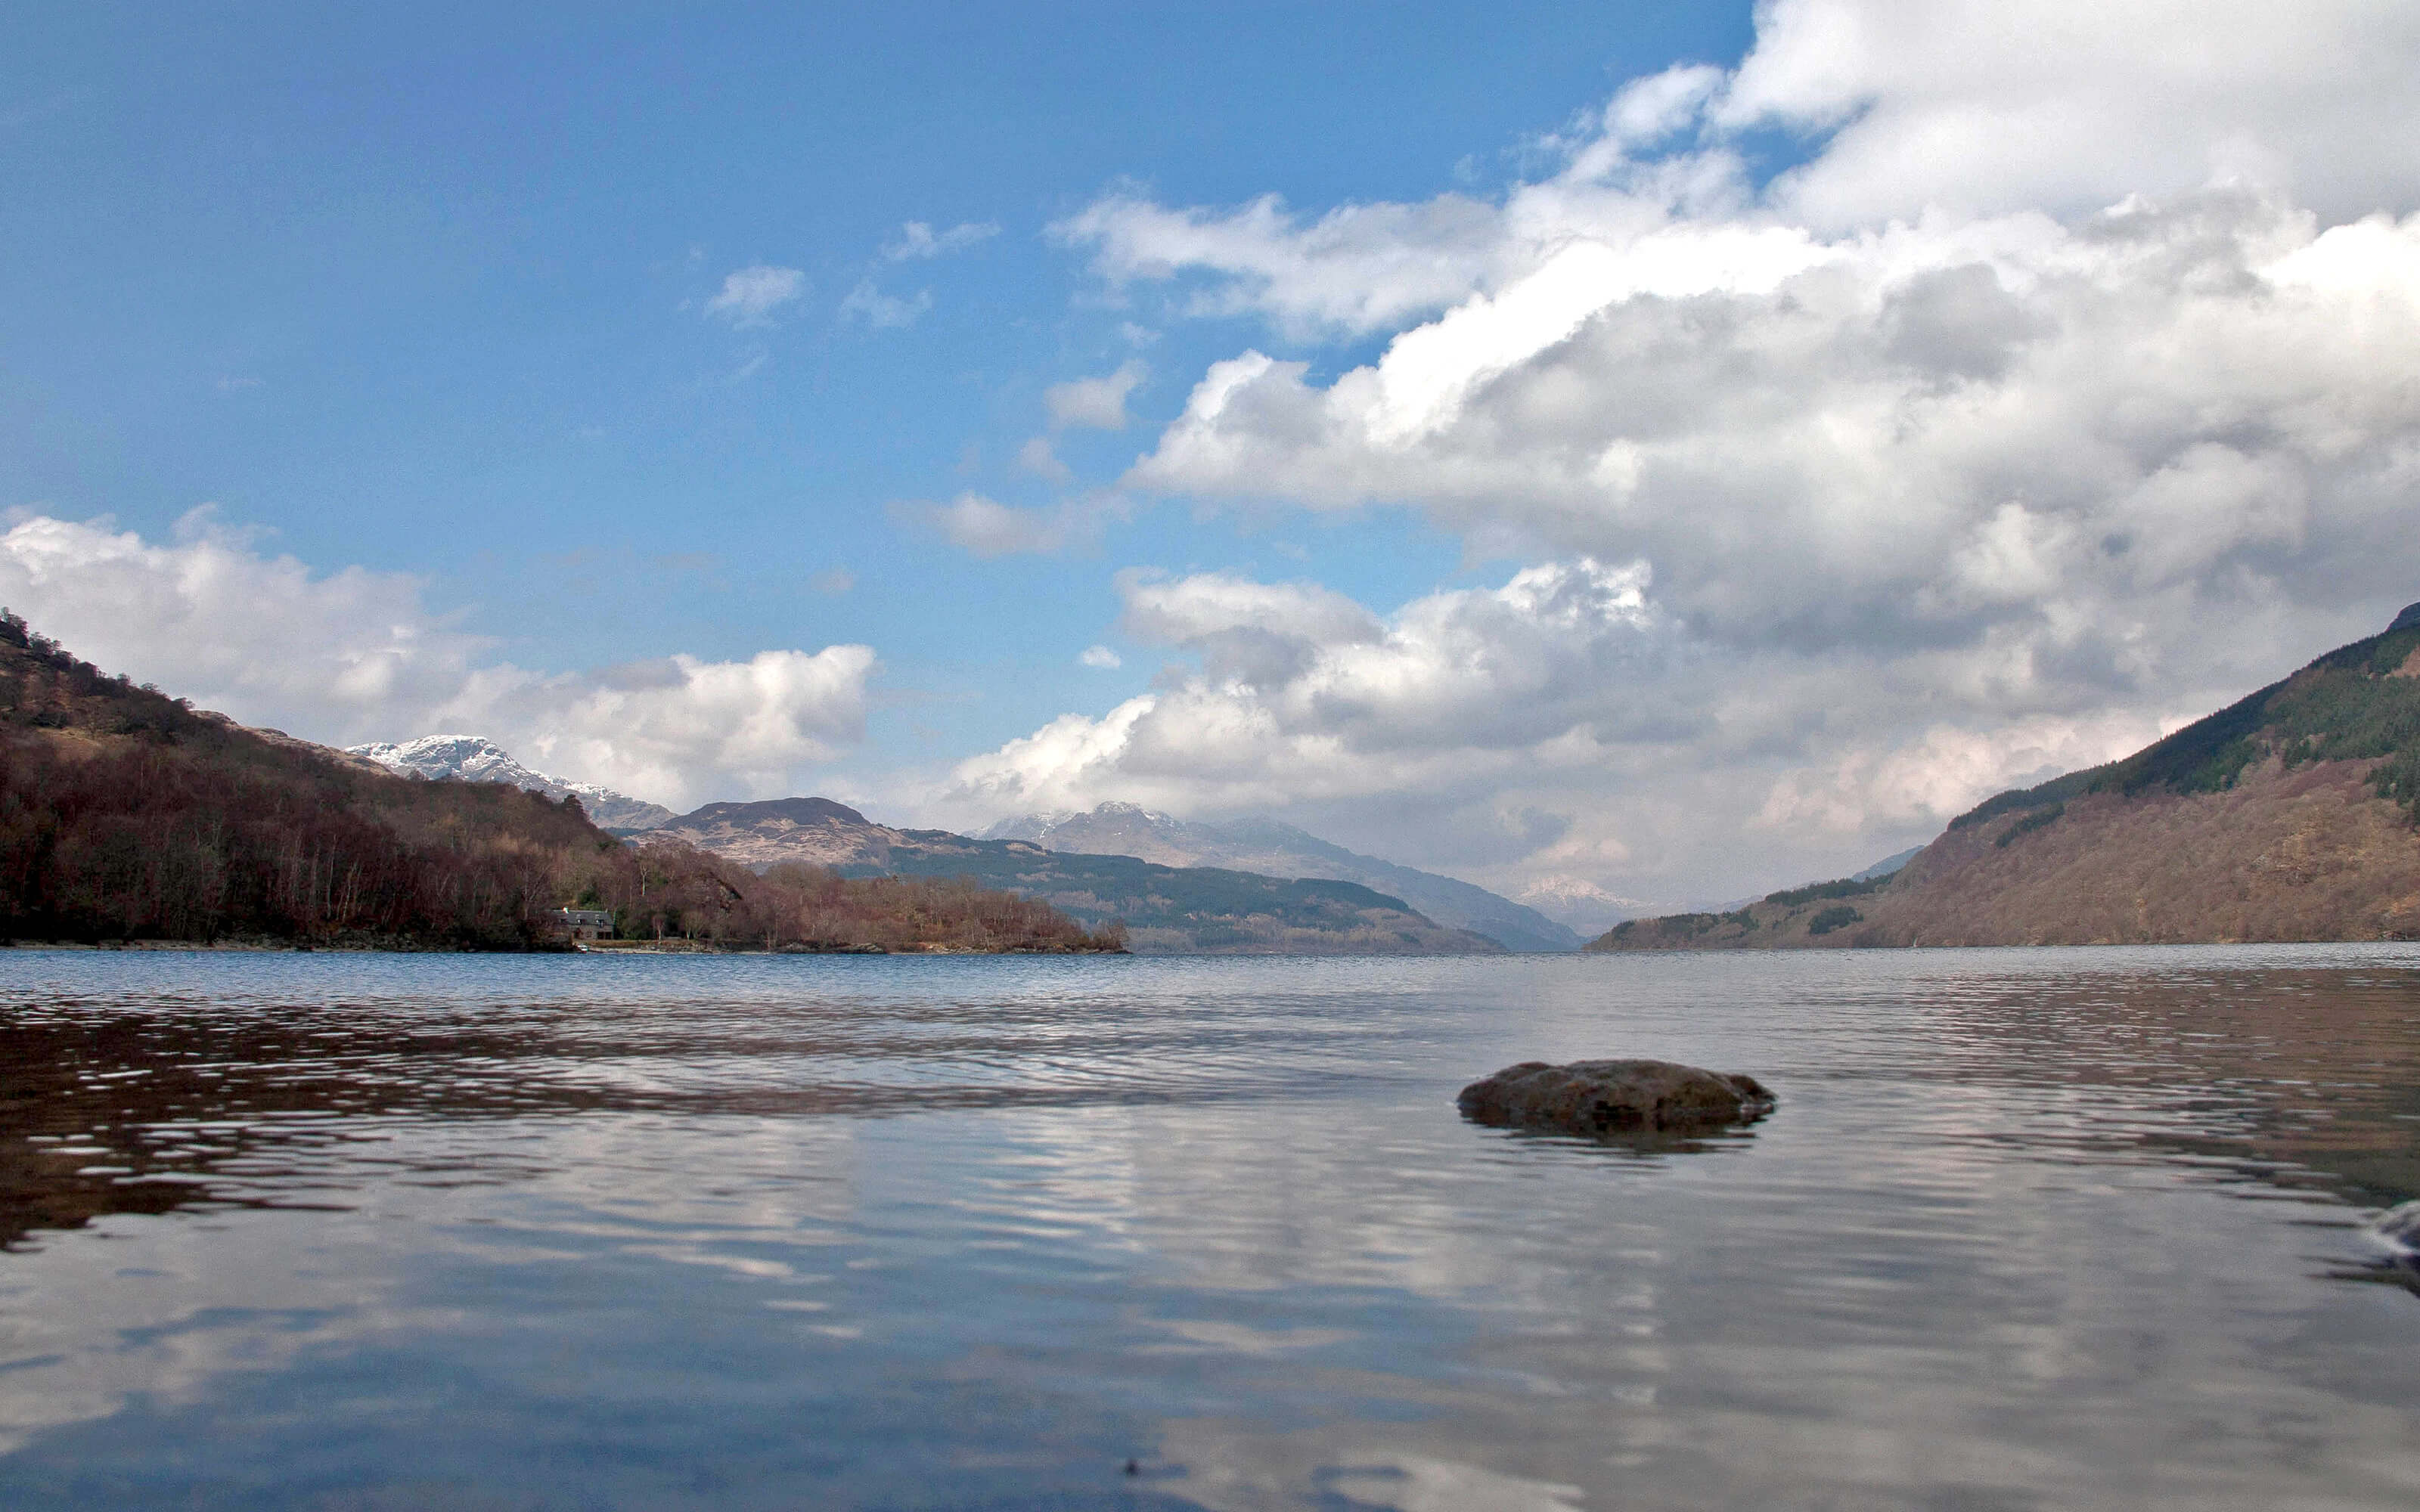 The view from the waters edge of Loch Lomond.